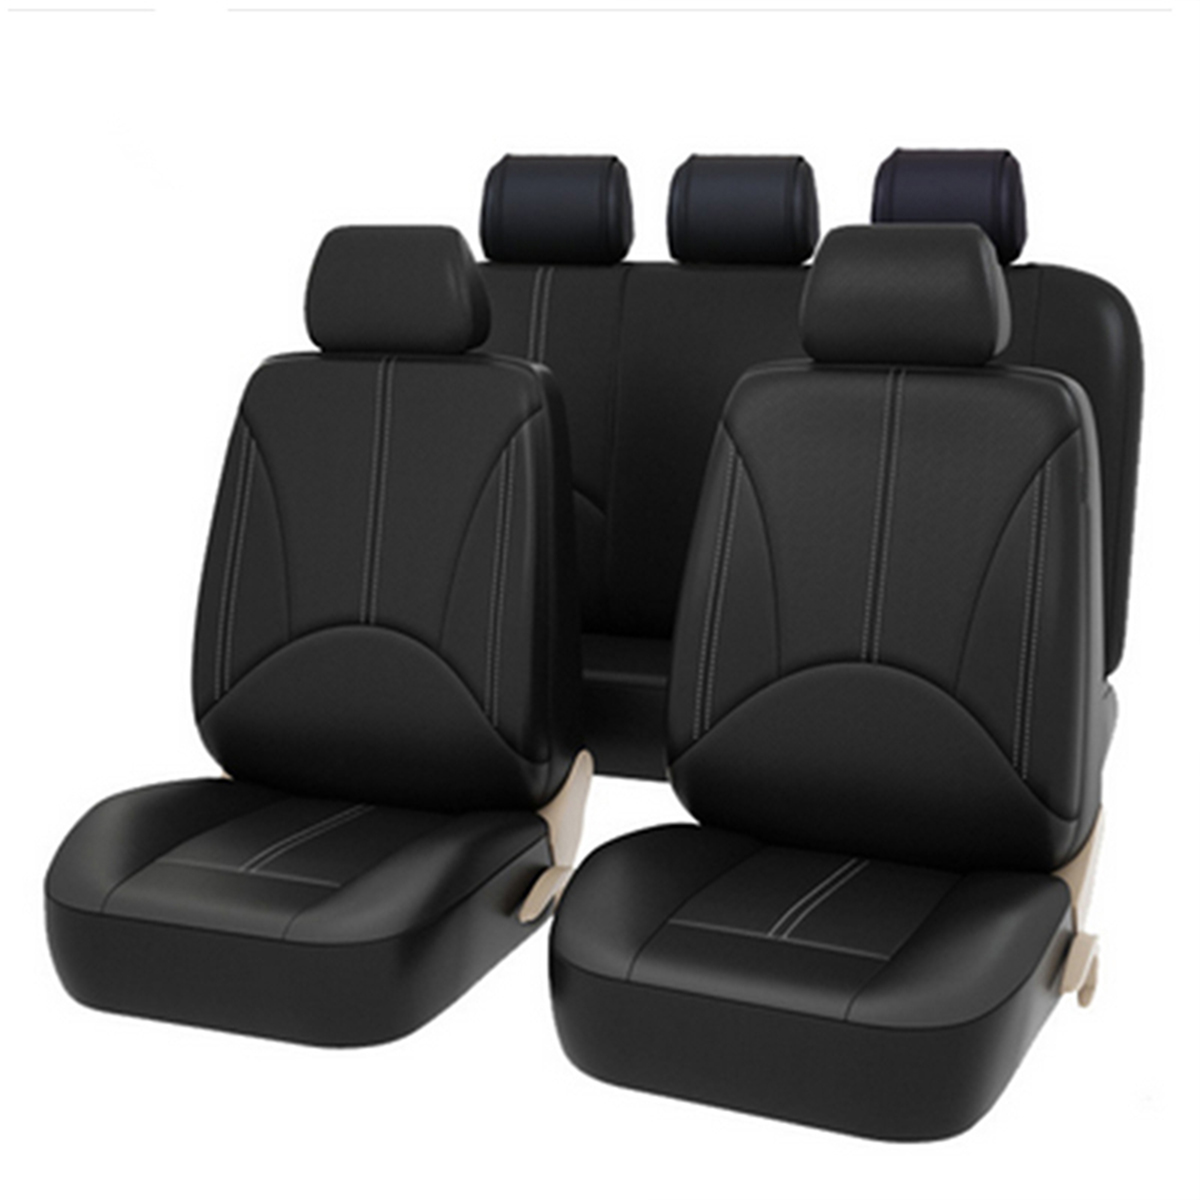 Universal Car PU Leather Front Car Seat Covers Back Bucket Car Seat Cover Auto Interior Car Seat Protector Cover High Quality